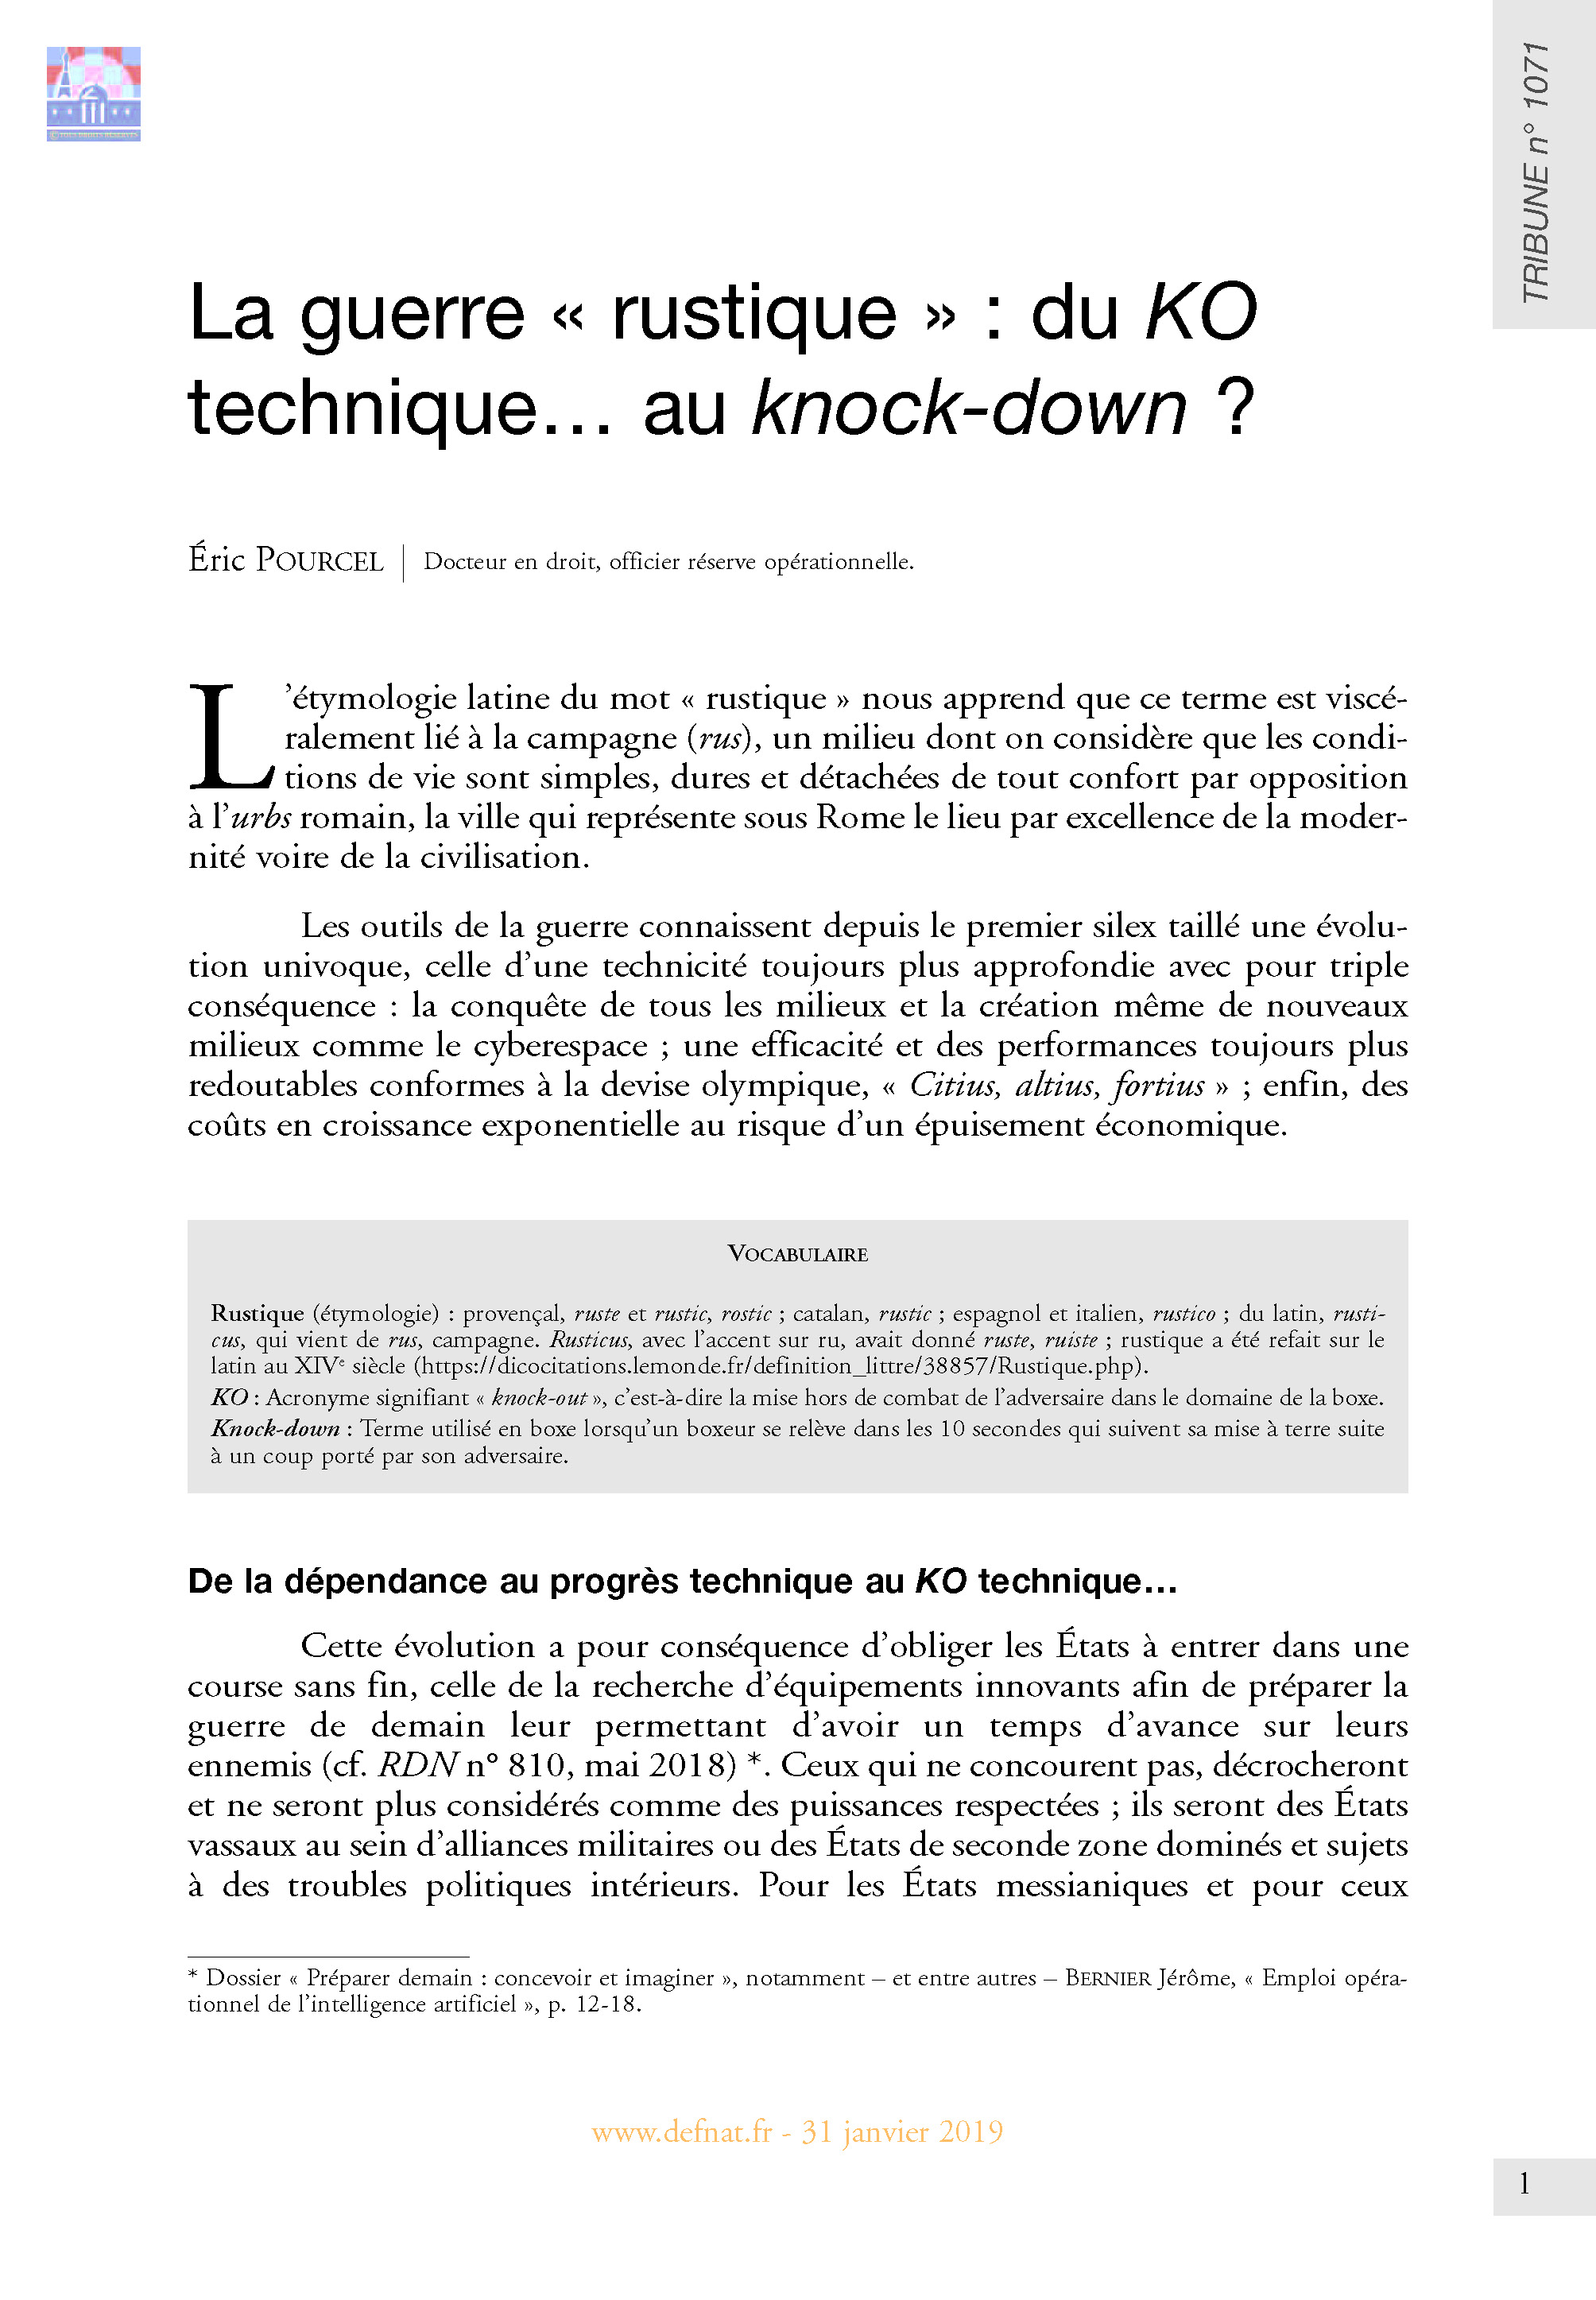 La guerre « rustique » : du KO technique… au knock-down ? (T 1071)